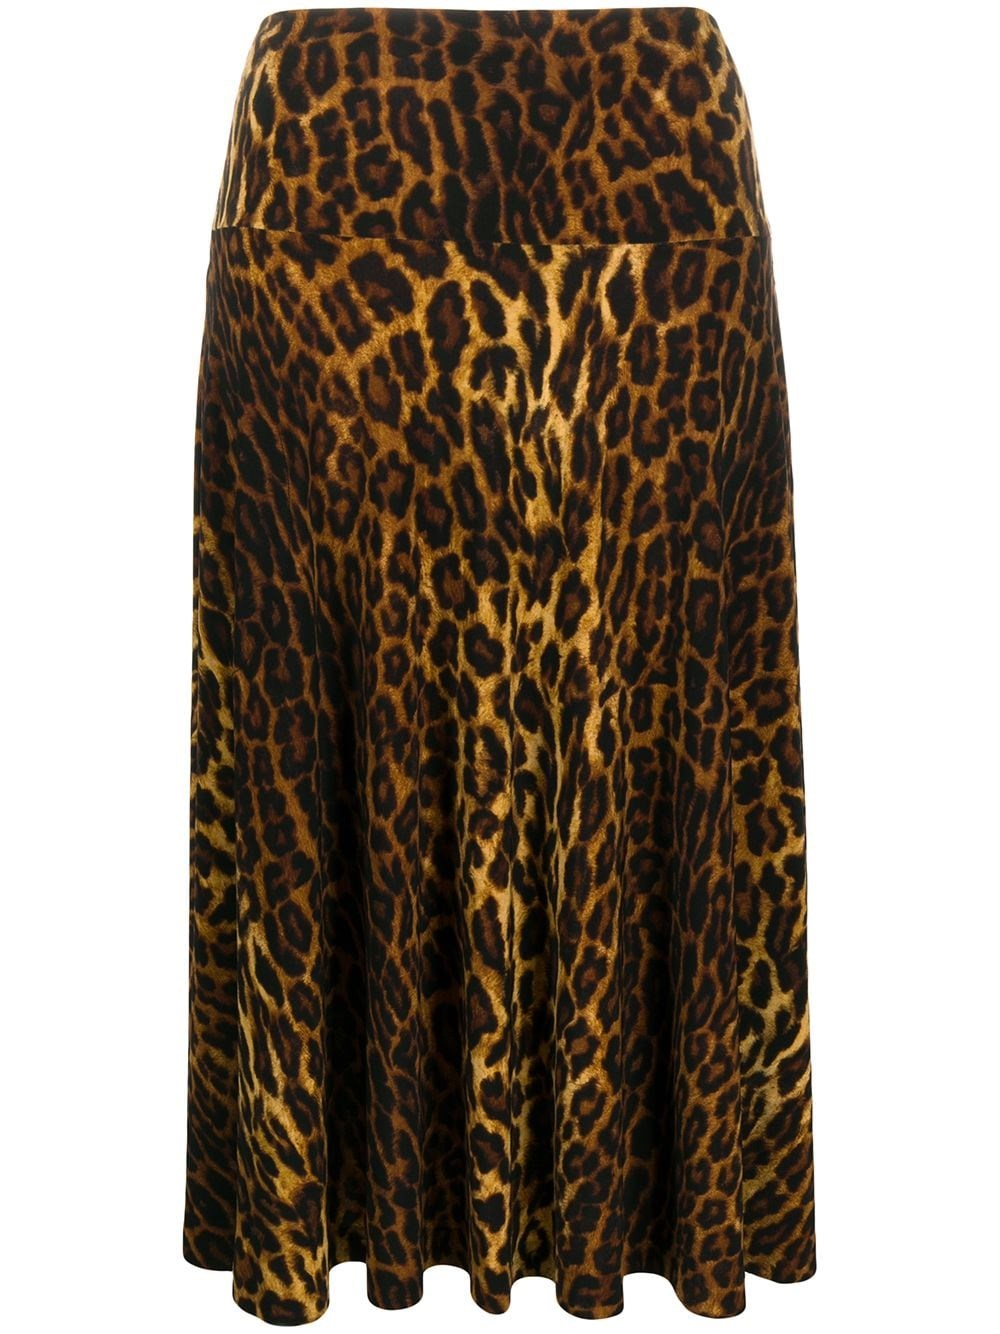 NORMA KAMALI High-Waisted Leopard-Print Skirt